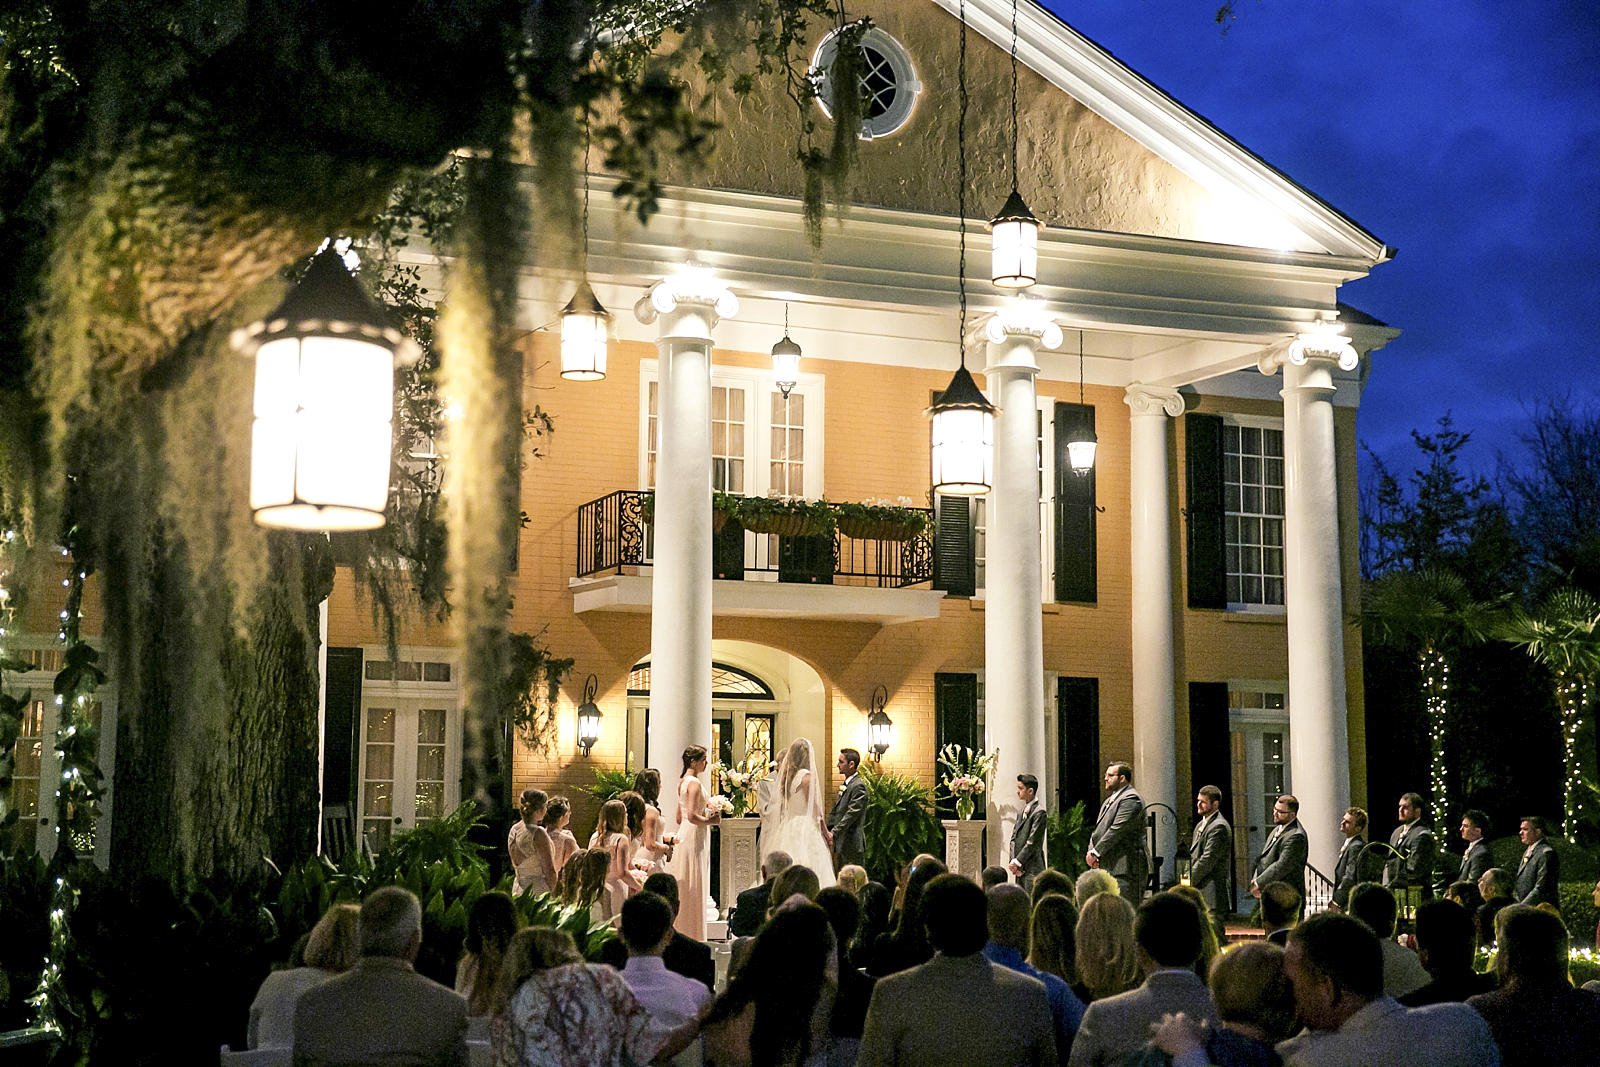 New Orleans Wedding at Southern Oaks Plantation, Featured in Southern Bride. Beautiful Lanterns surrounded this plantation and created an ambiant feel.